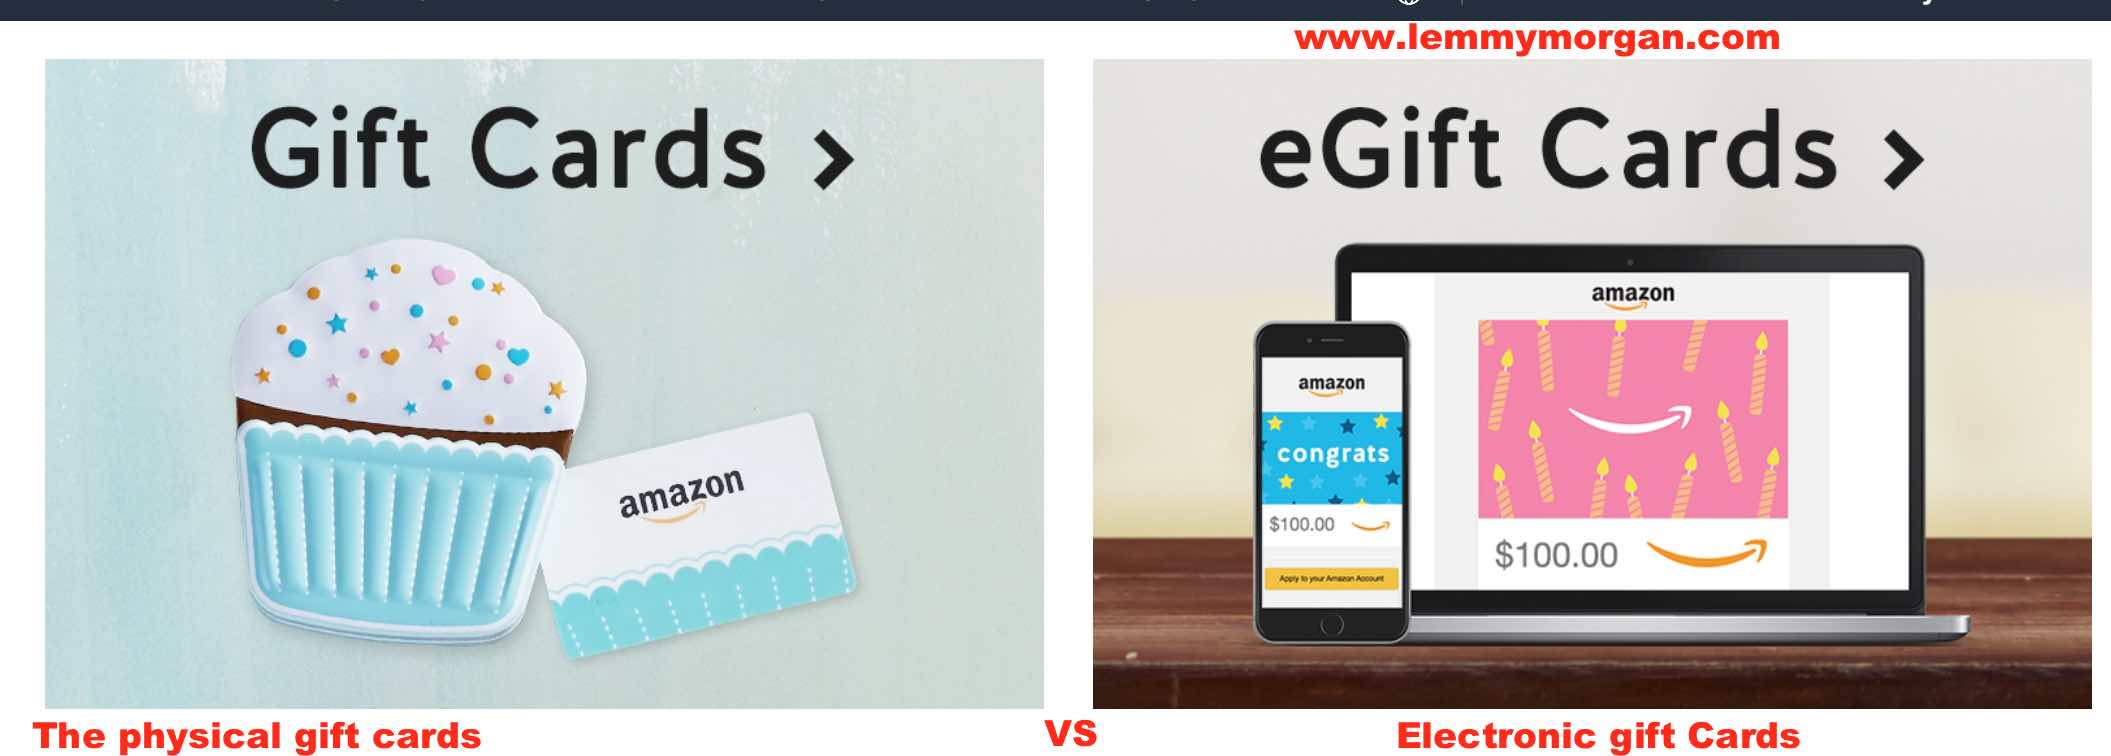 Amazon.com Gift Cards: Uses, benefits,limitations and where to buy